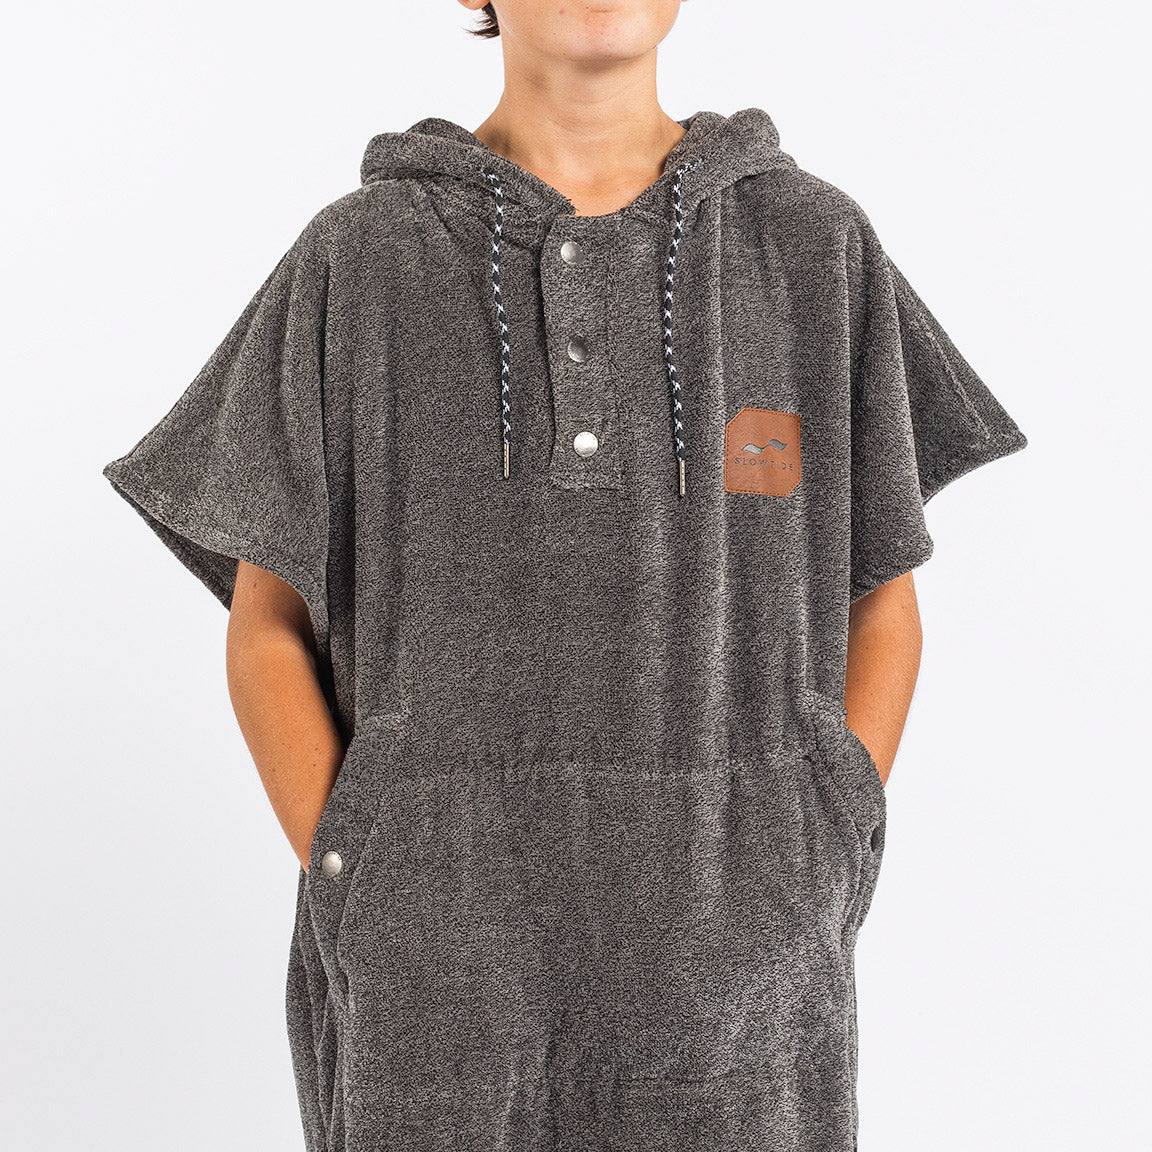 The Digs Changing Poncho - Heather Grey - Small - Slowtide